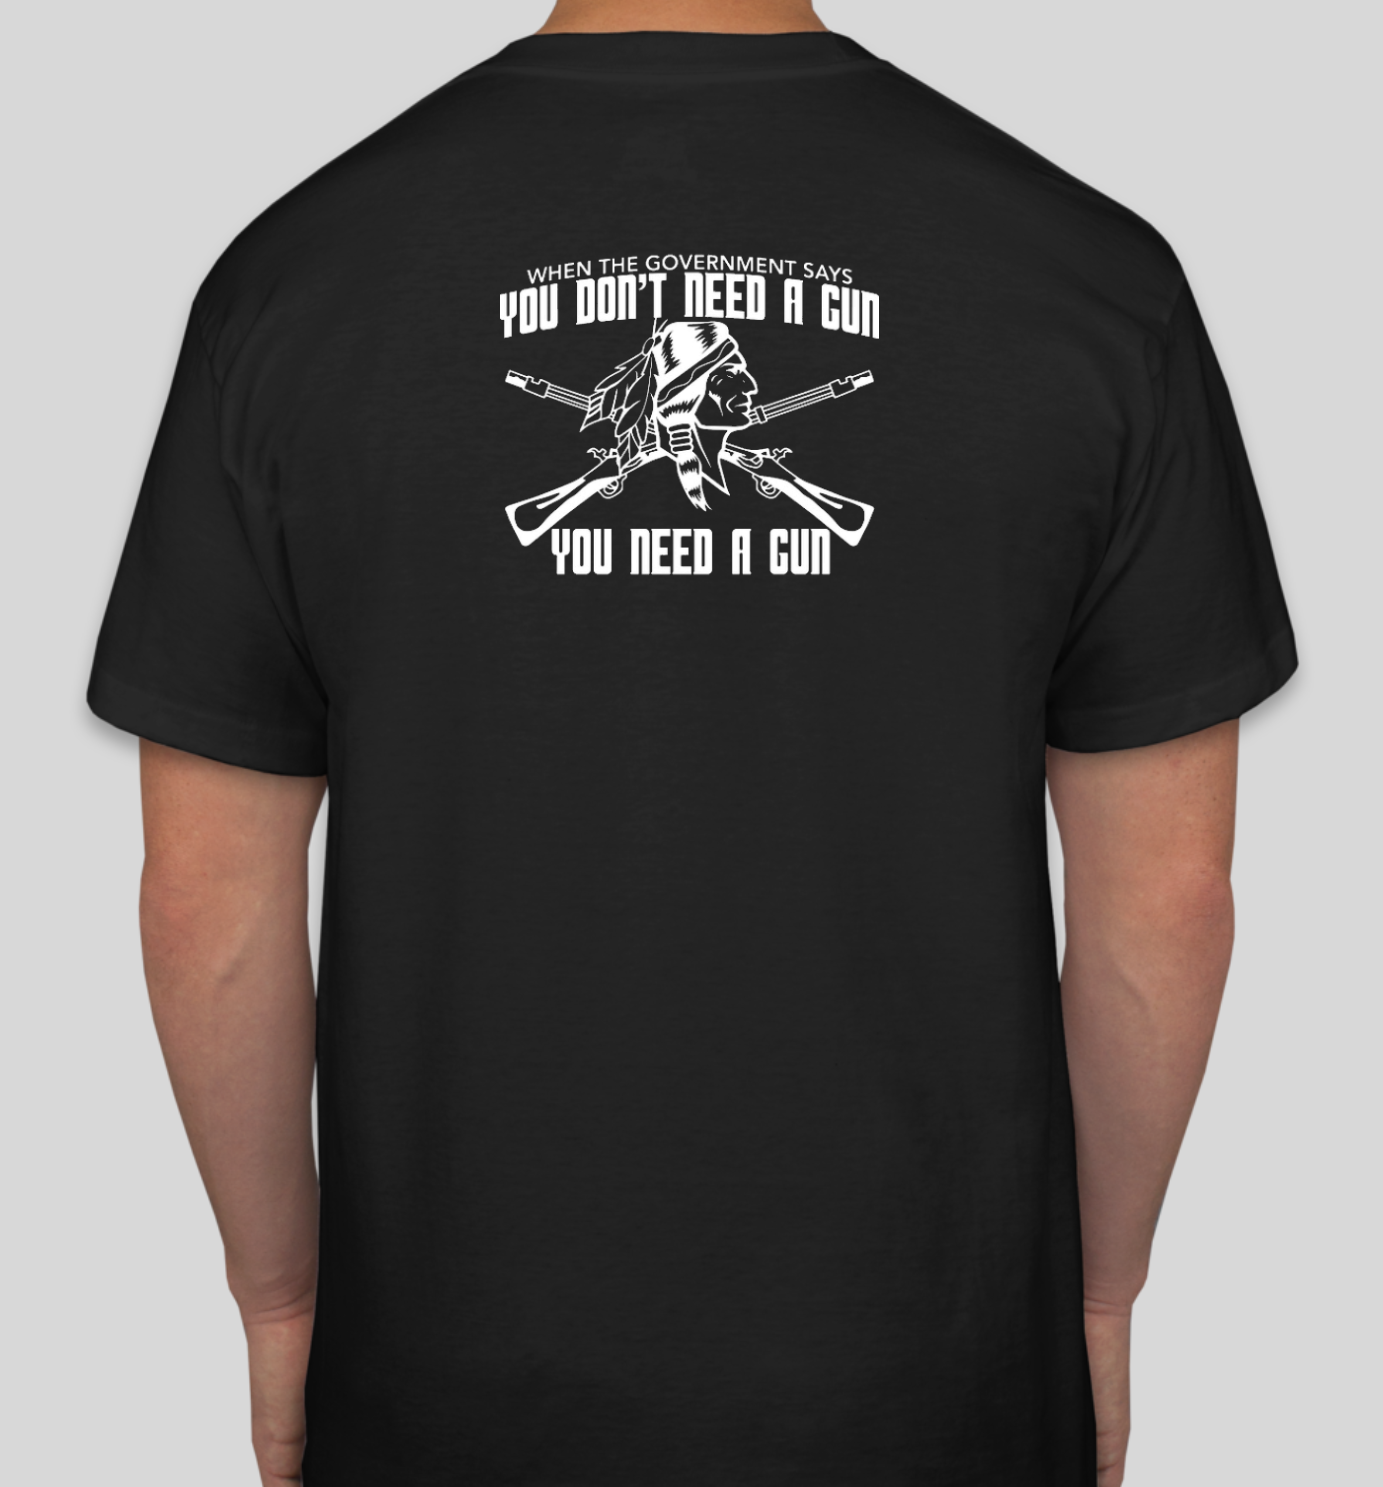 You Don't Need a Gun Tee